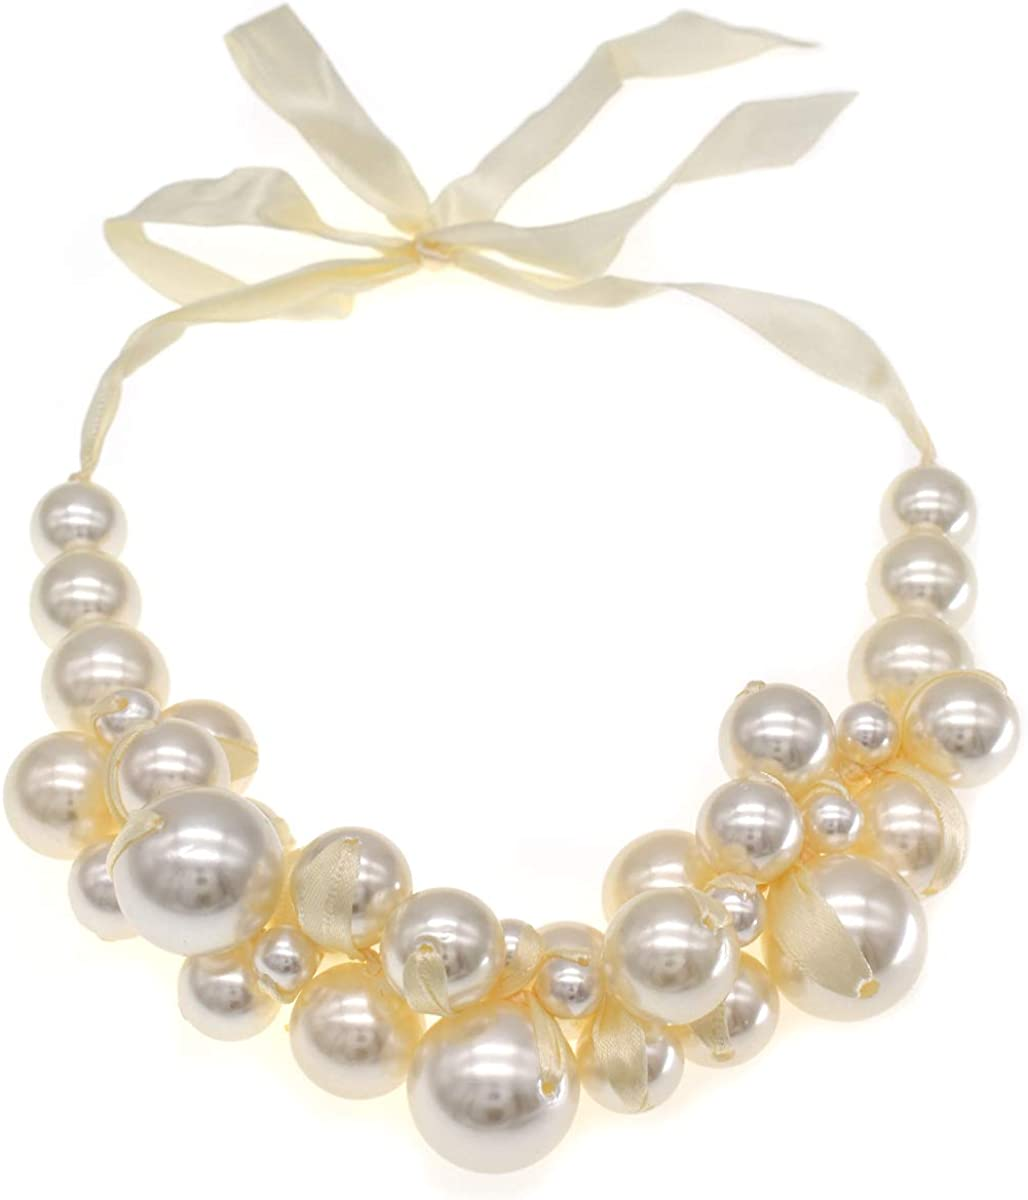 Hand made Pearl Statement Necklace for Women Big Pearls and Rhinestone Crystal Necklaces Chunky Pearl Necklace Large Pearl Necklace and Earrings Set for Party Wedding